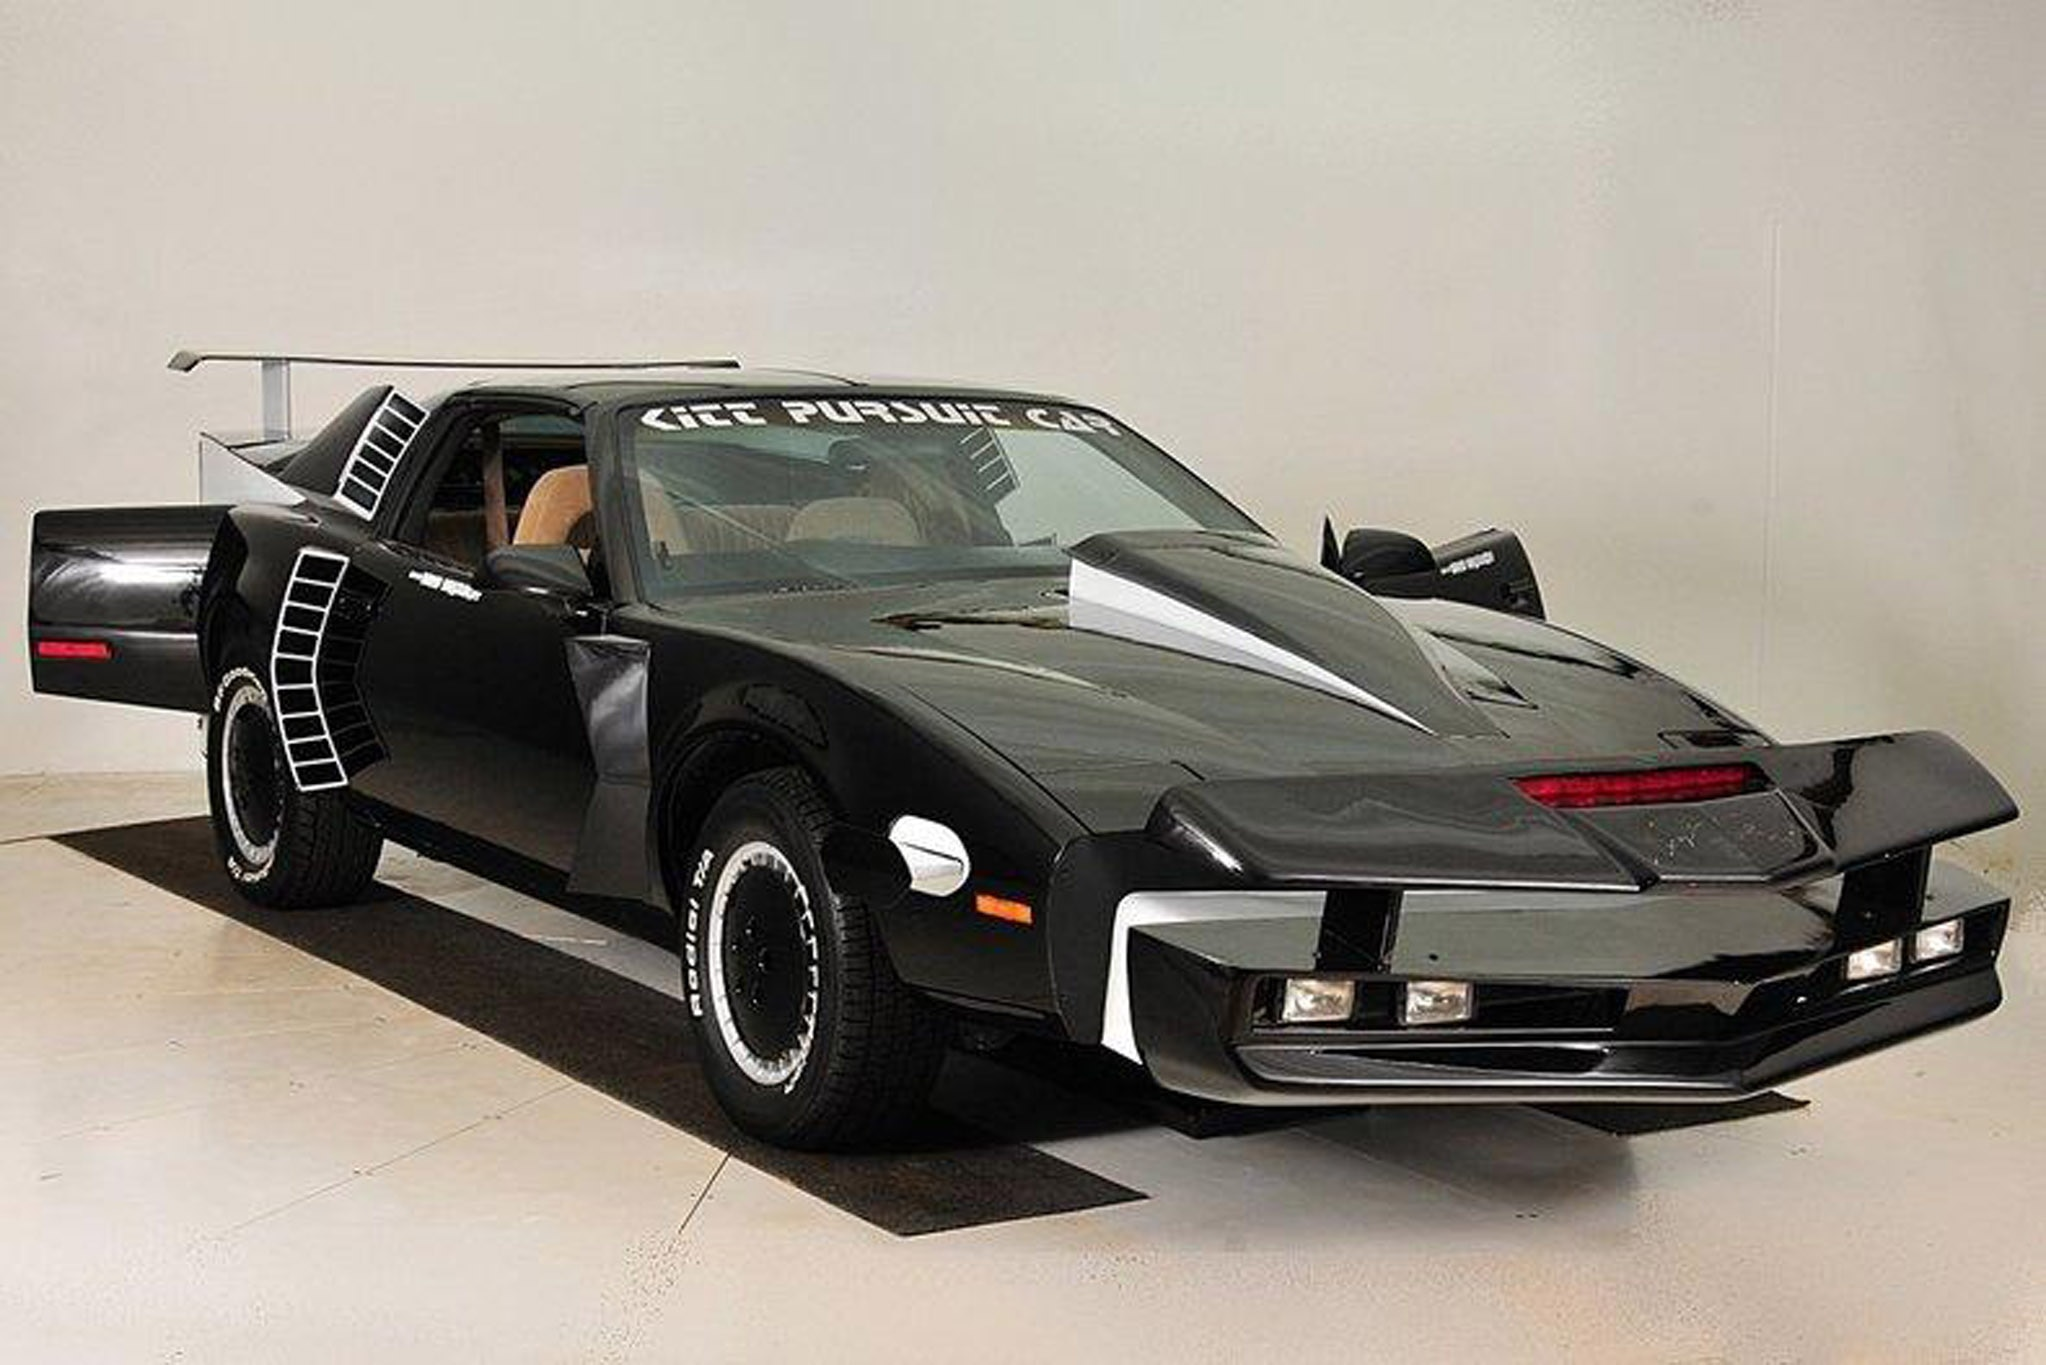 Knight Rider Super Pursuit Mode KITT Goes to Auction | Automobile